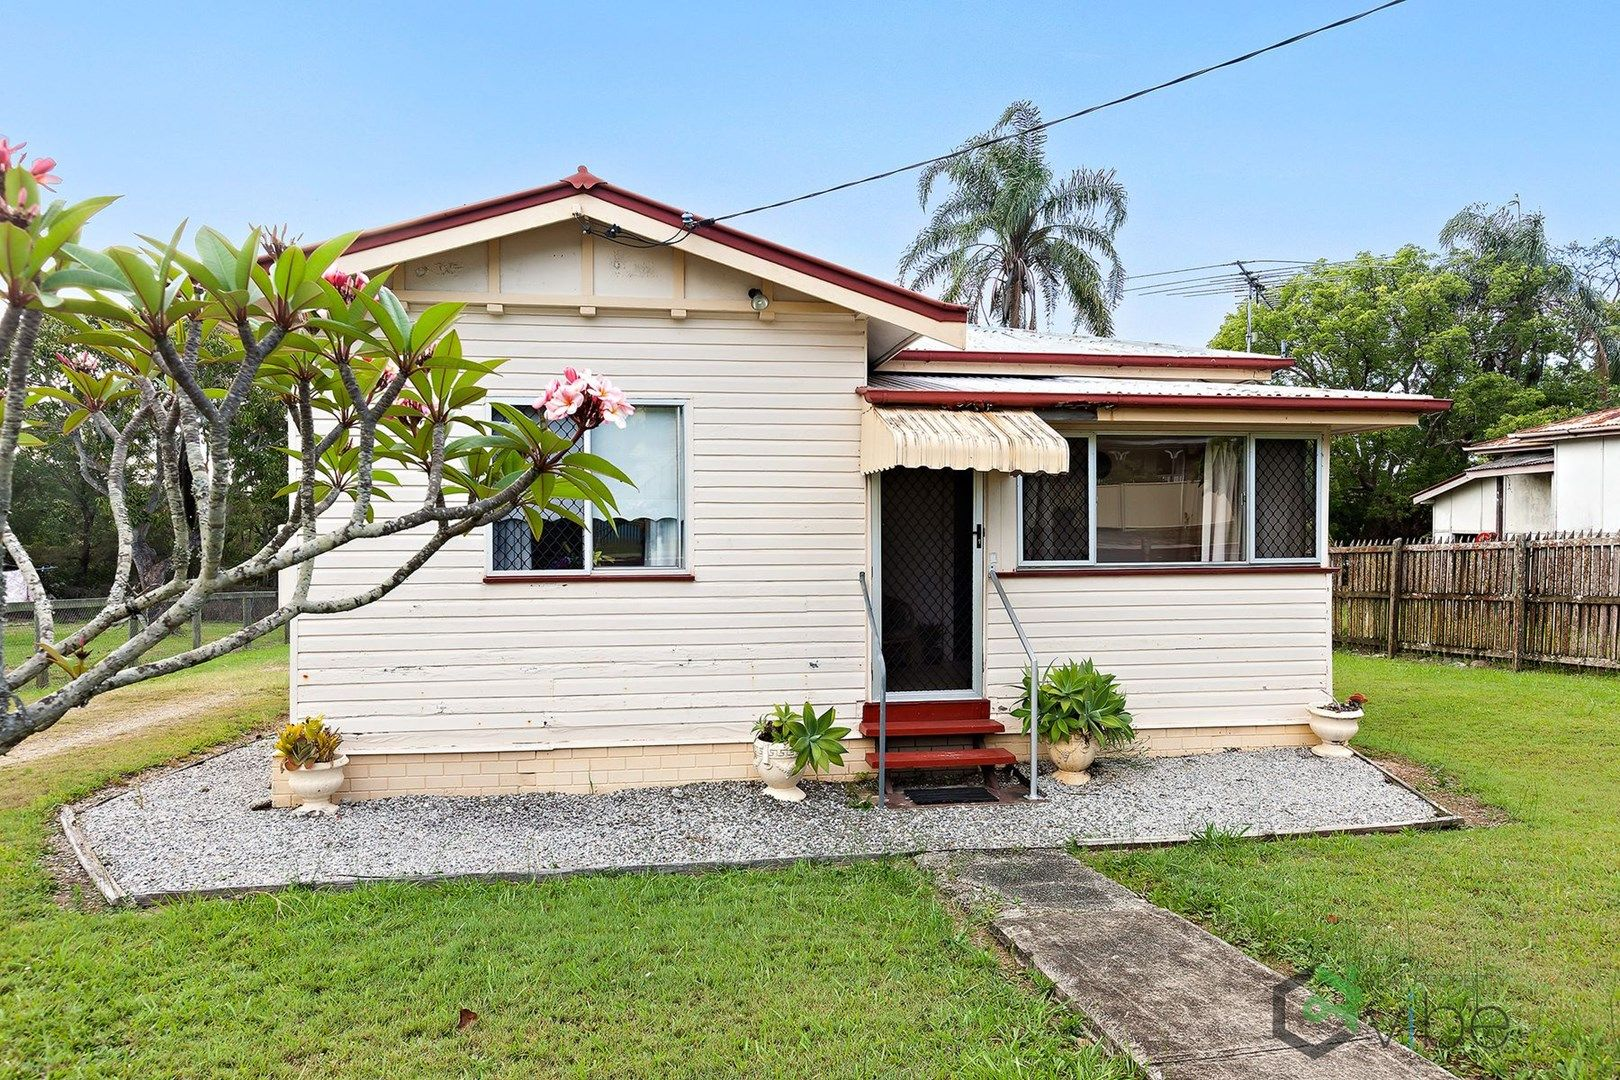 71 Bougainville Street, Beenleigh QLD 4207, Image 0